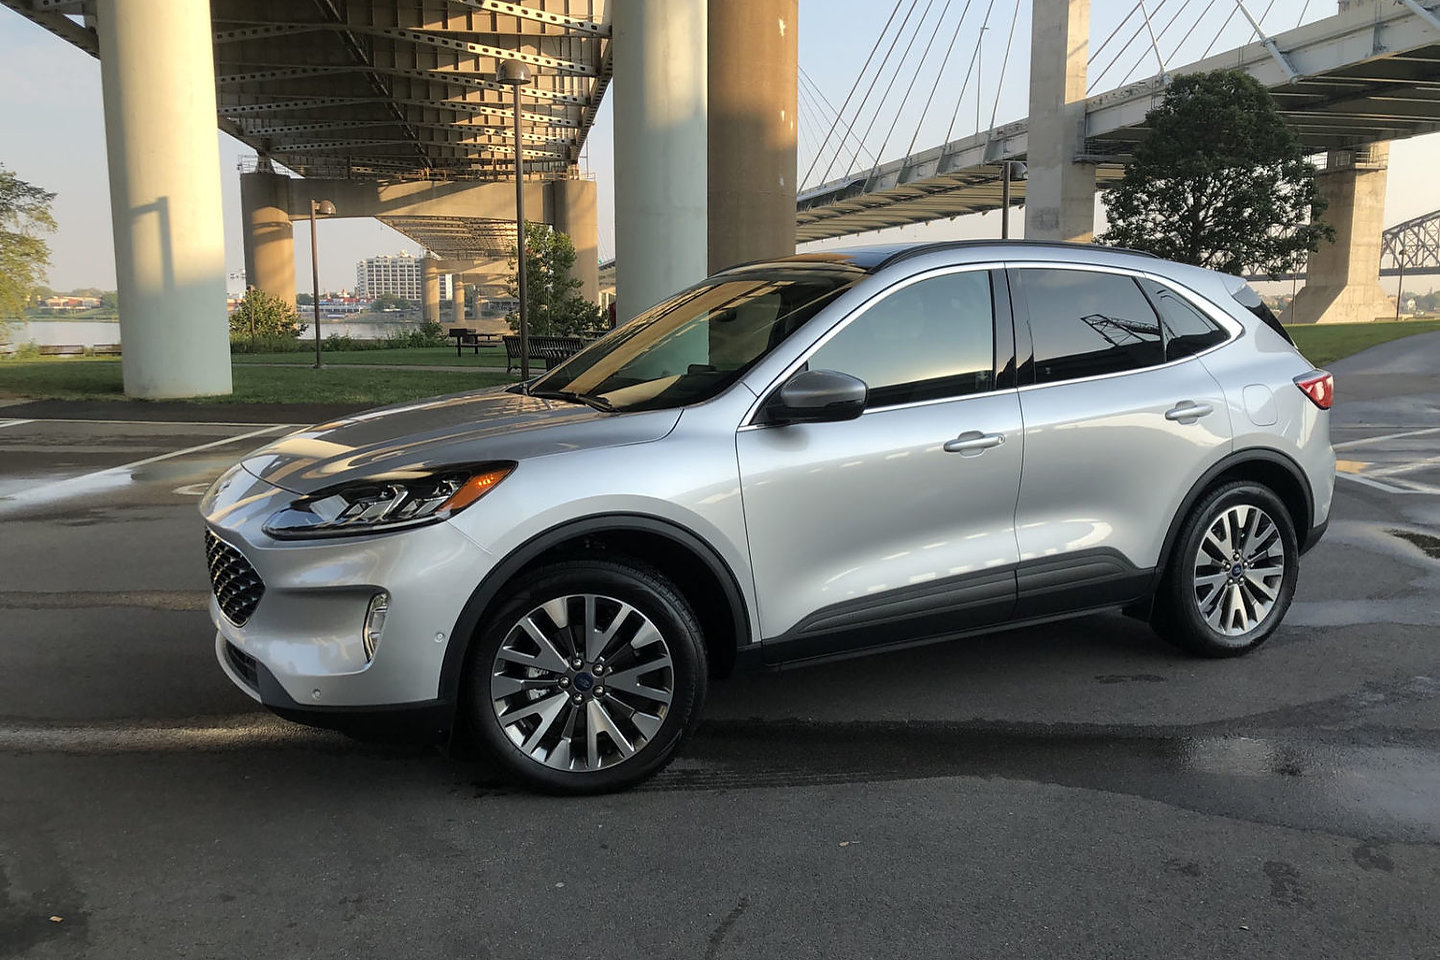 Premier Essai Routier Du Ford Escape 2020 : Remonter La